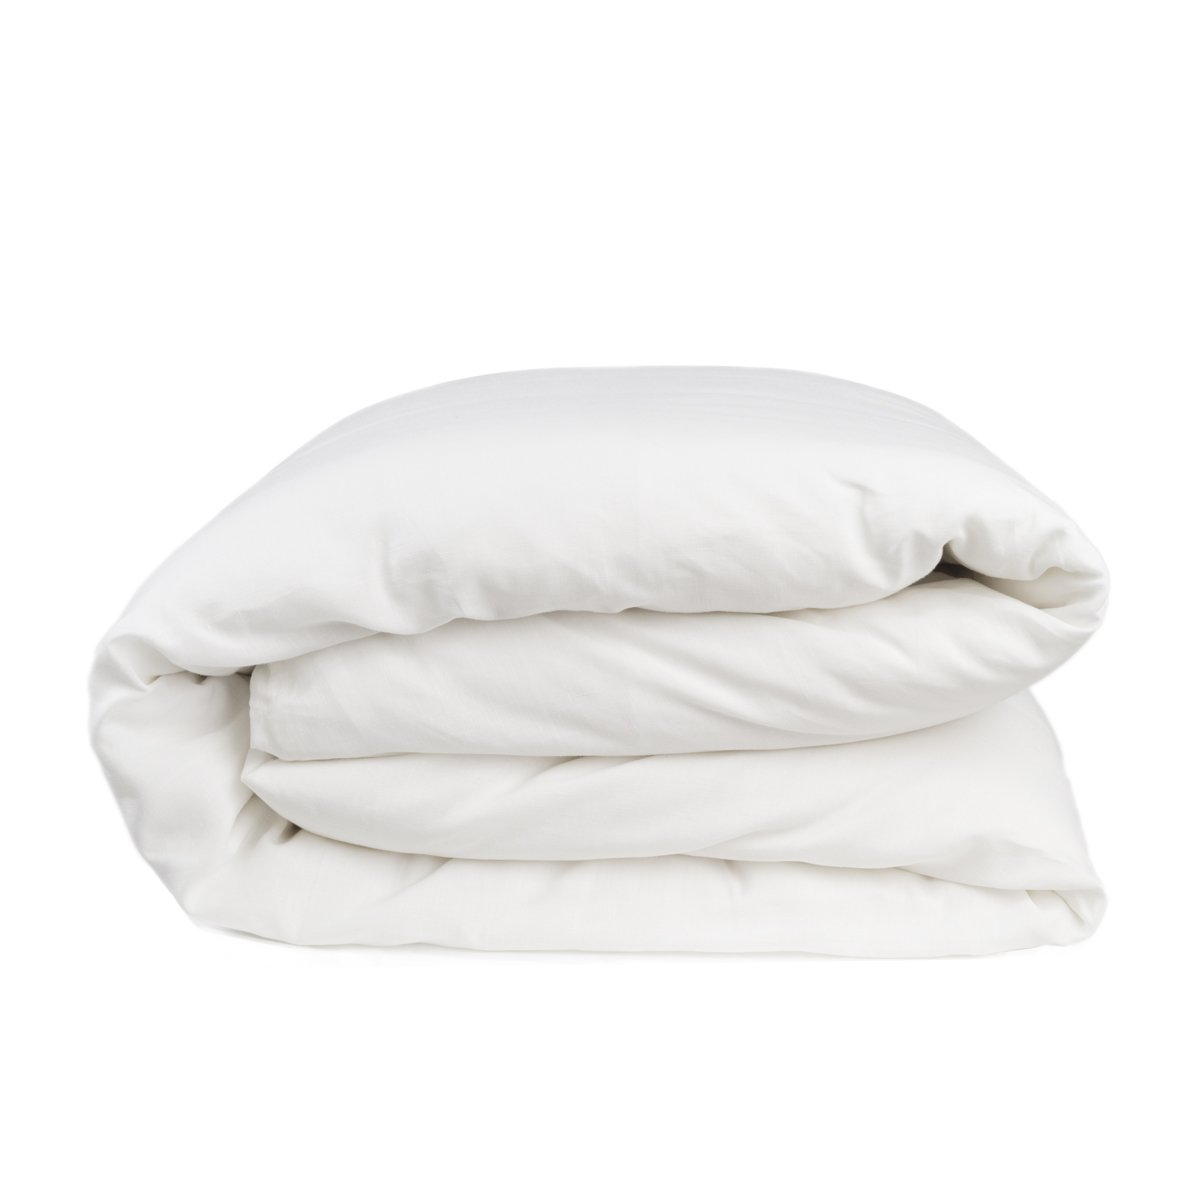 European Made Pure Linen Duvet Cover. 100% Fine Organic and Natural Flax (King, Pure White) by Len Linum